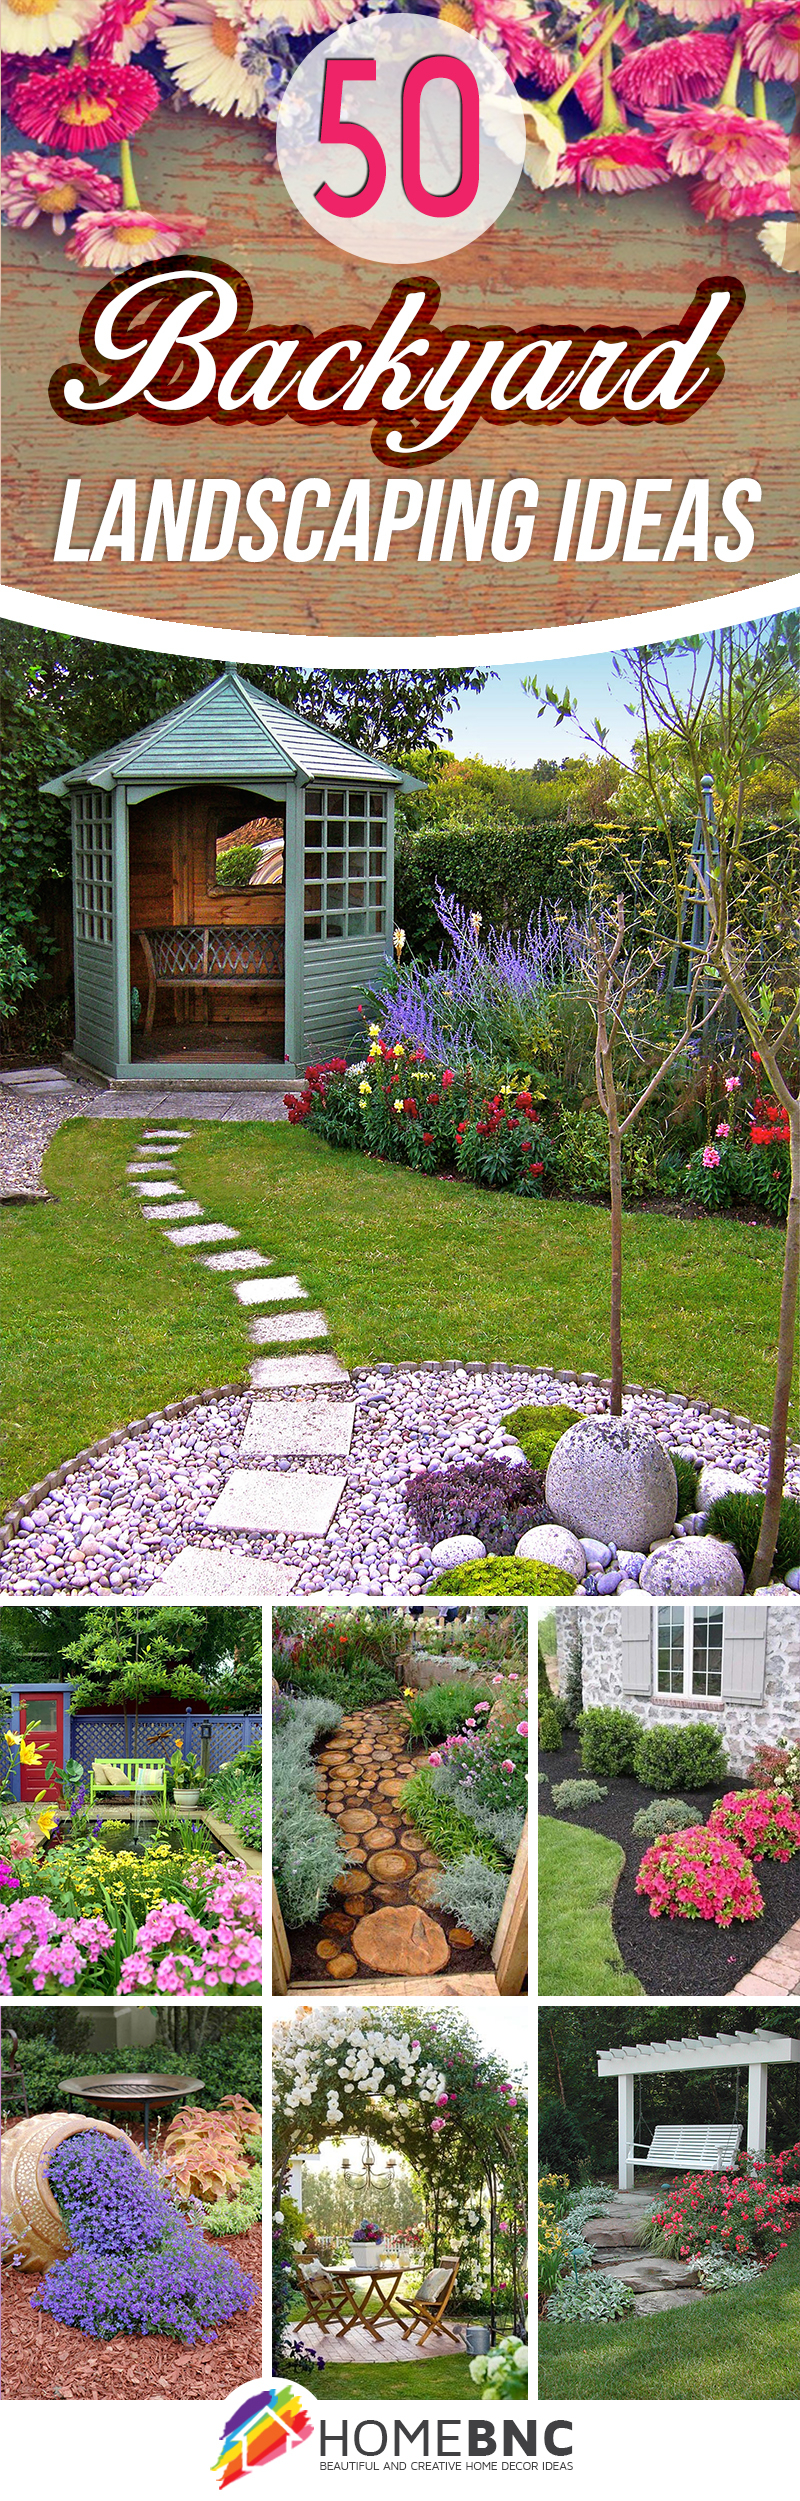 50 Best Backyard Landscaping Ideas And Designs In 2019 in 10 Awesome Concepts of How to Improve Backyard Landscape Designs